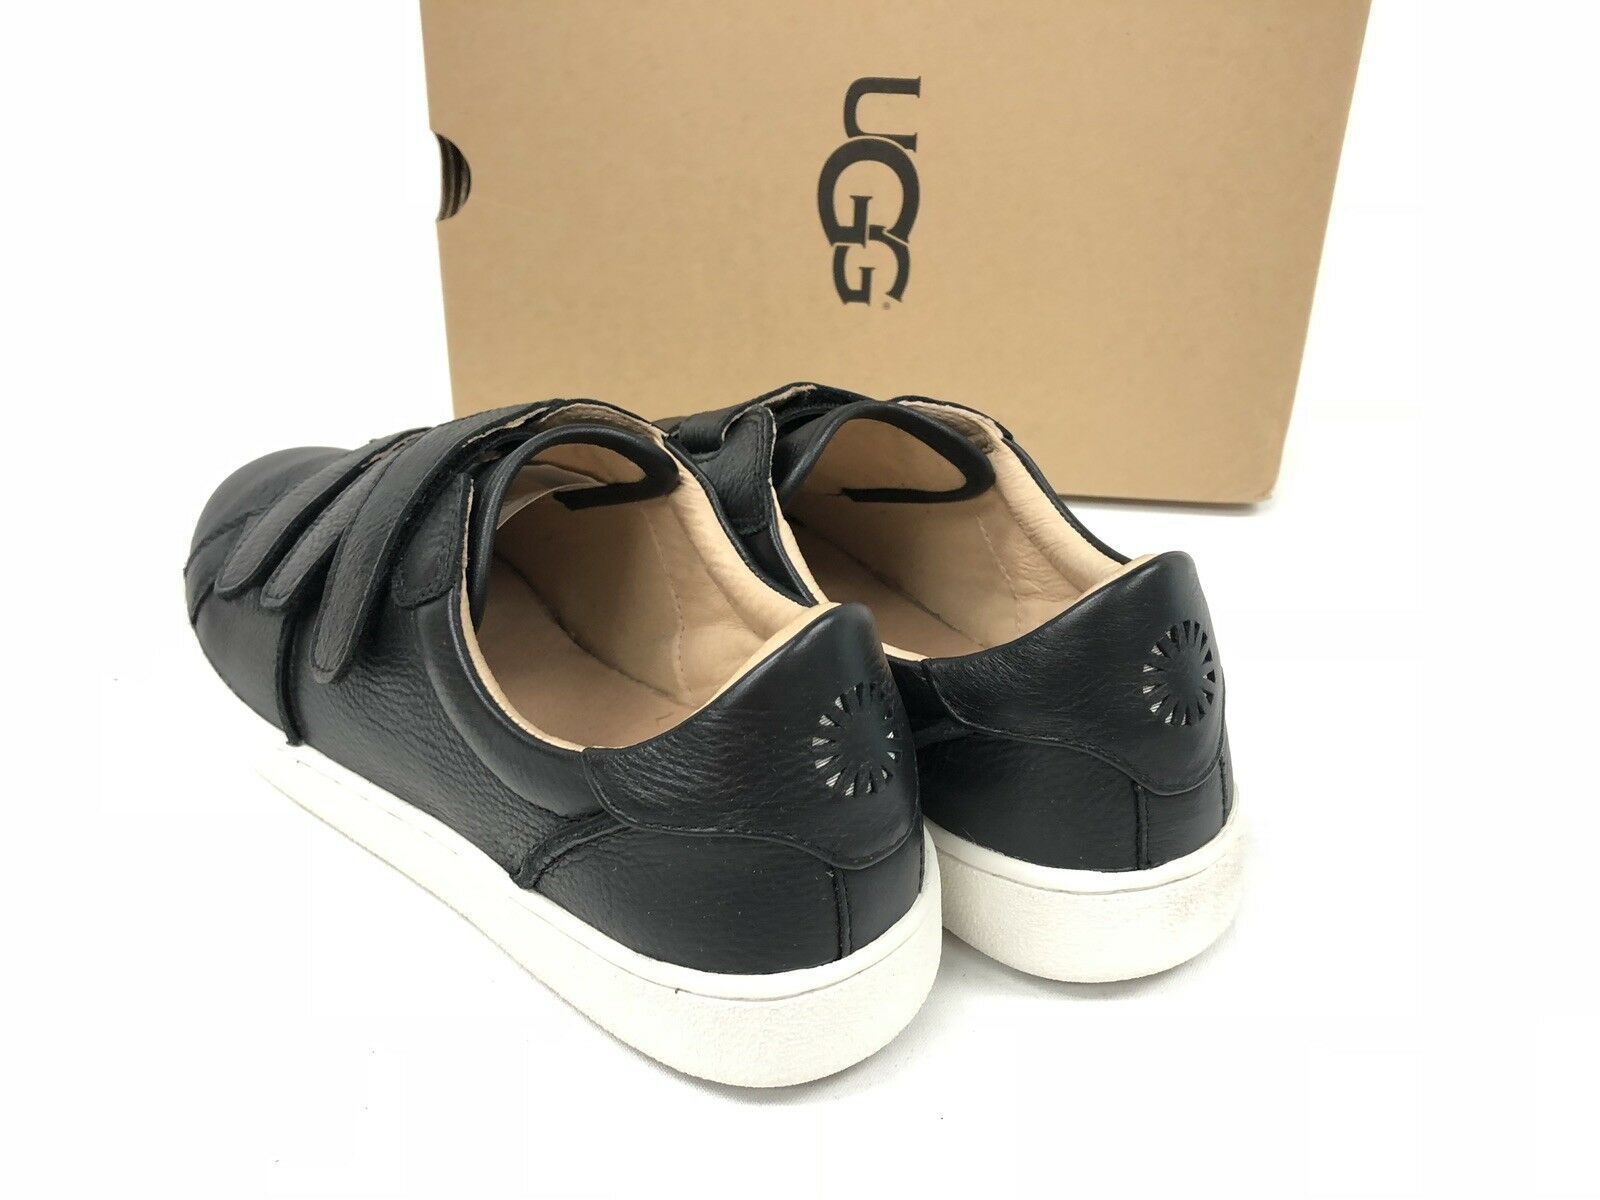 Ugg Australia Alix Leather Sneaker Tennis Shoe 1092530 Black Women's Shoes